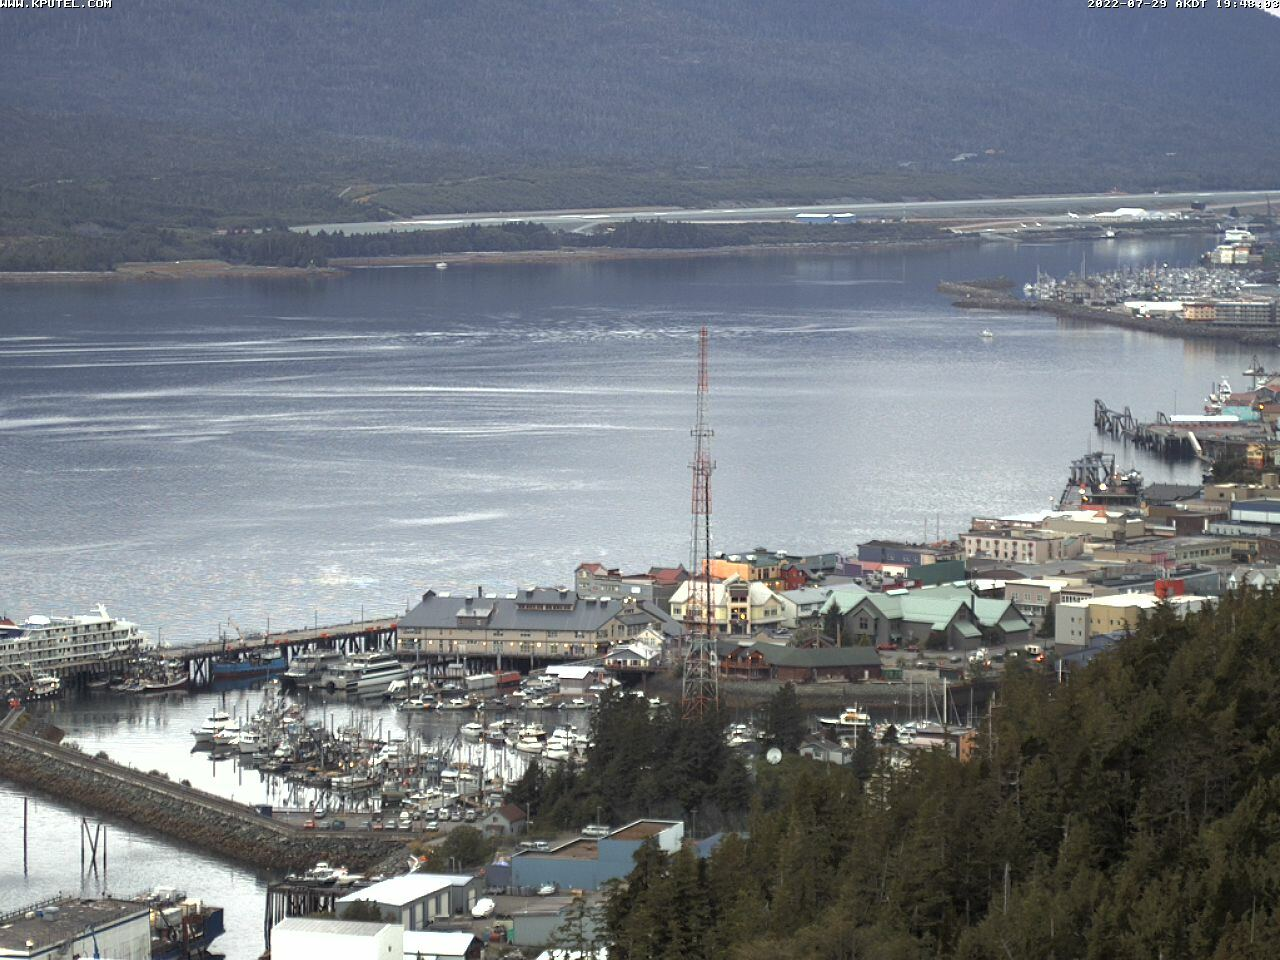 Current Ketchikan Webcam #7 Mega-View Image